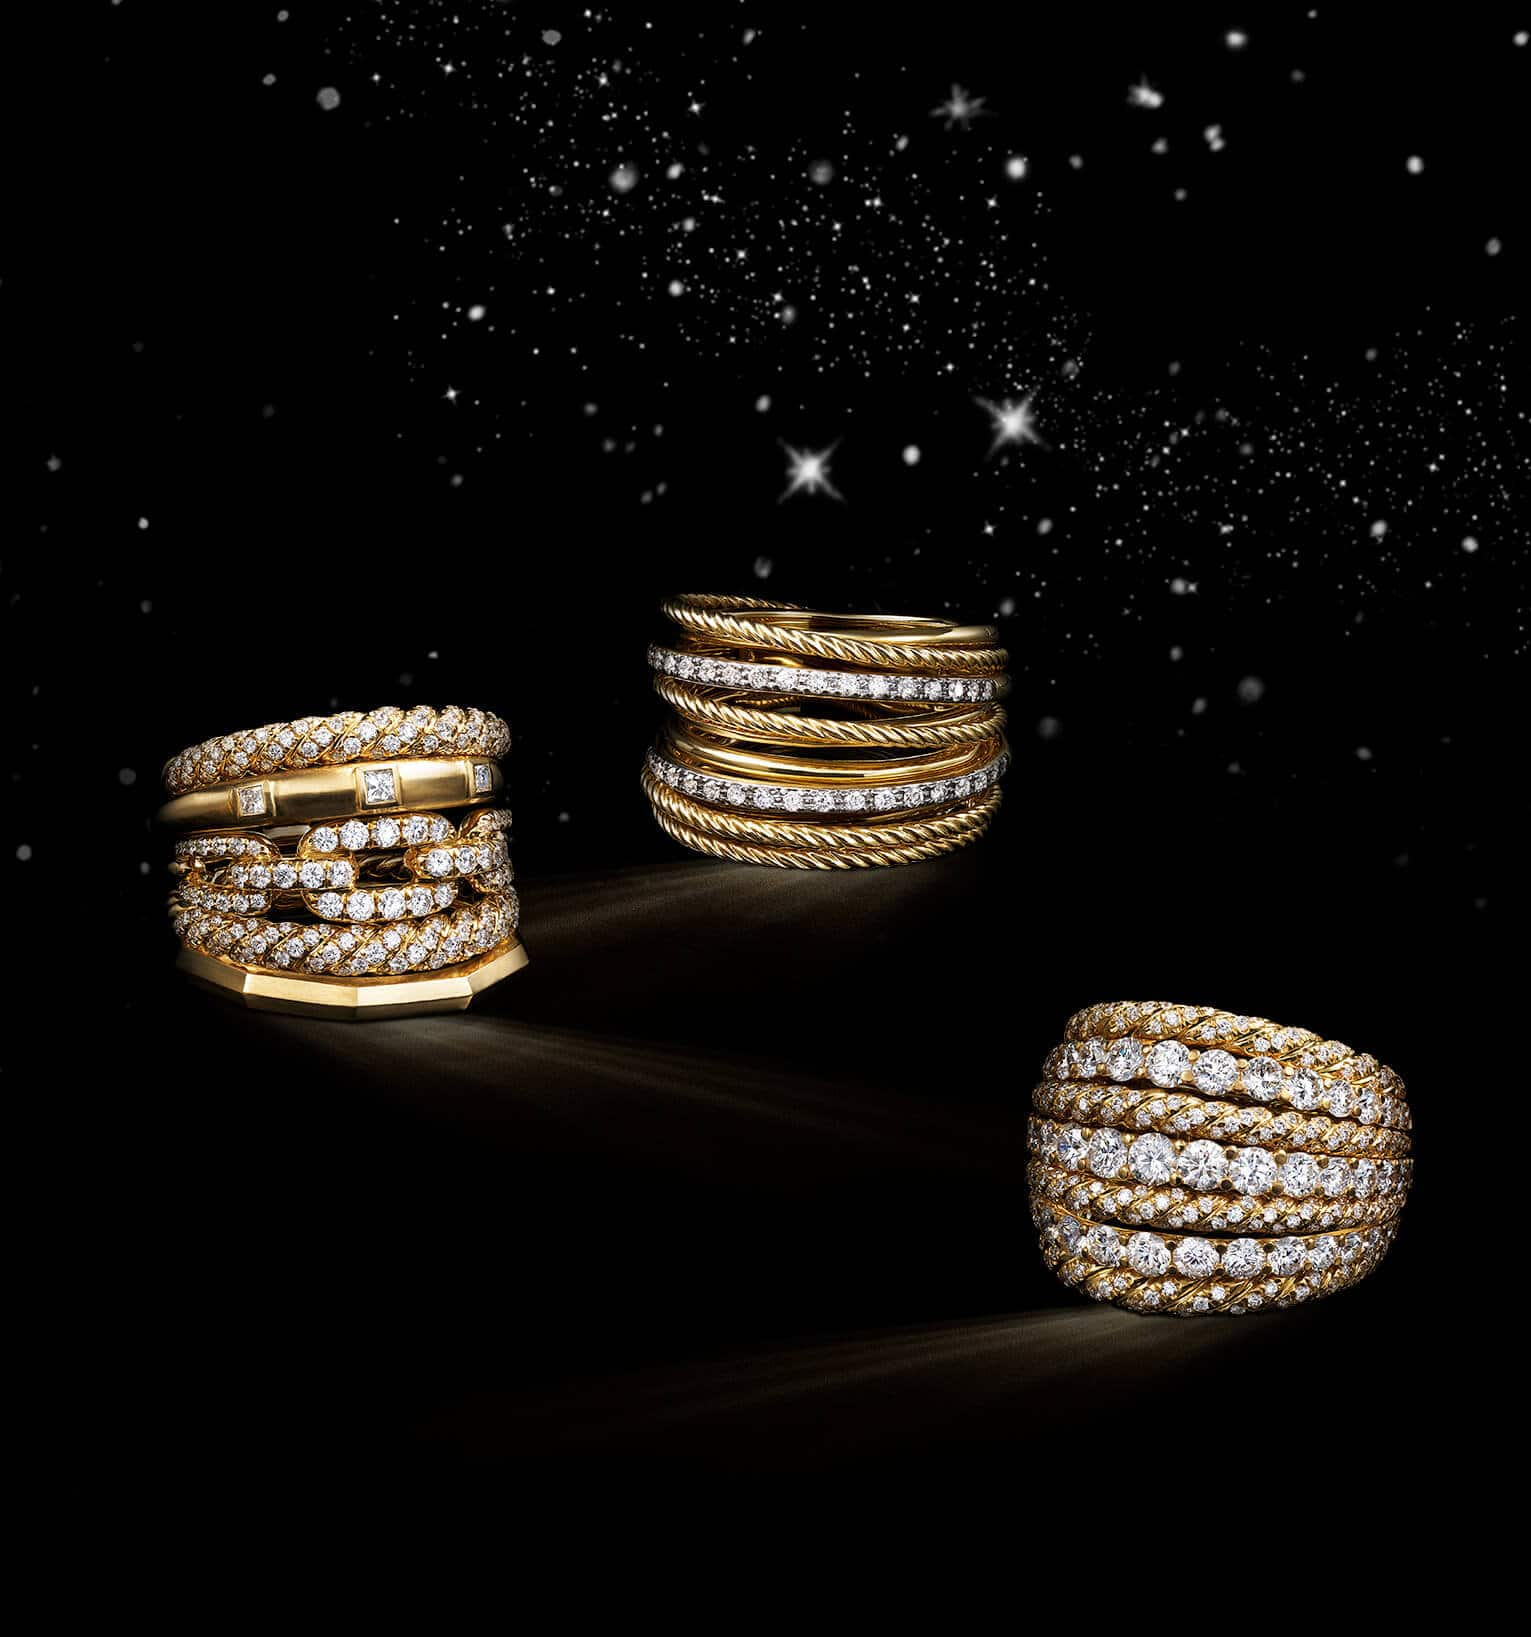 A color photo shows three David Yurman women's rings from the Stax, Crossover and High Jewelry collections floating in front of a starry night sky. The jewelry is crafted from 18K yellow gold with pavé diamonds.